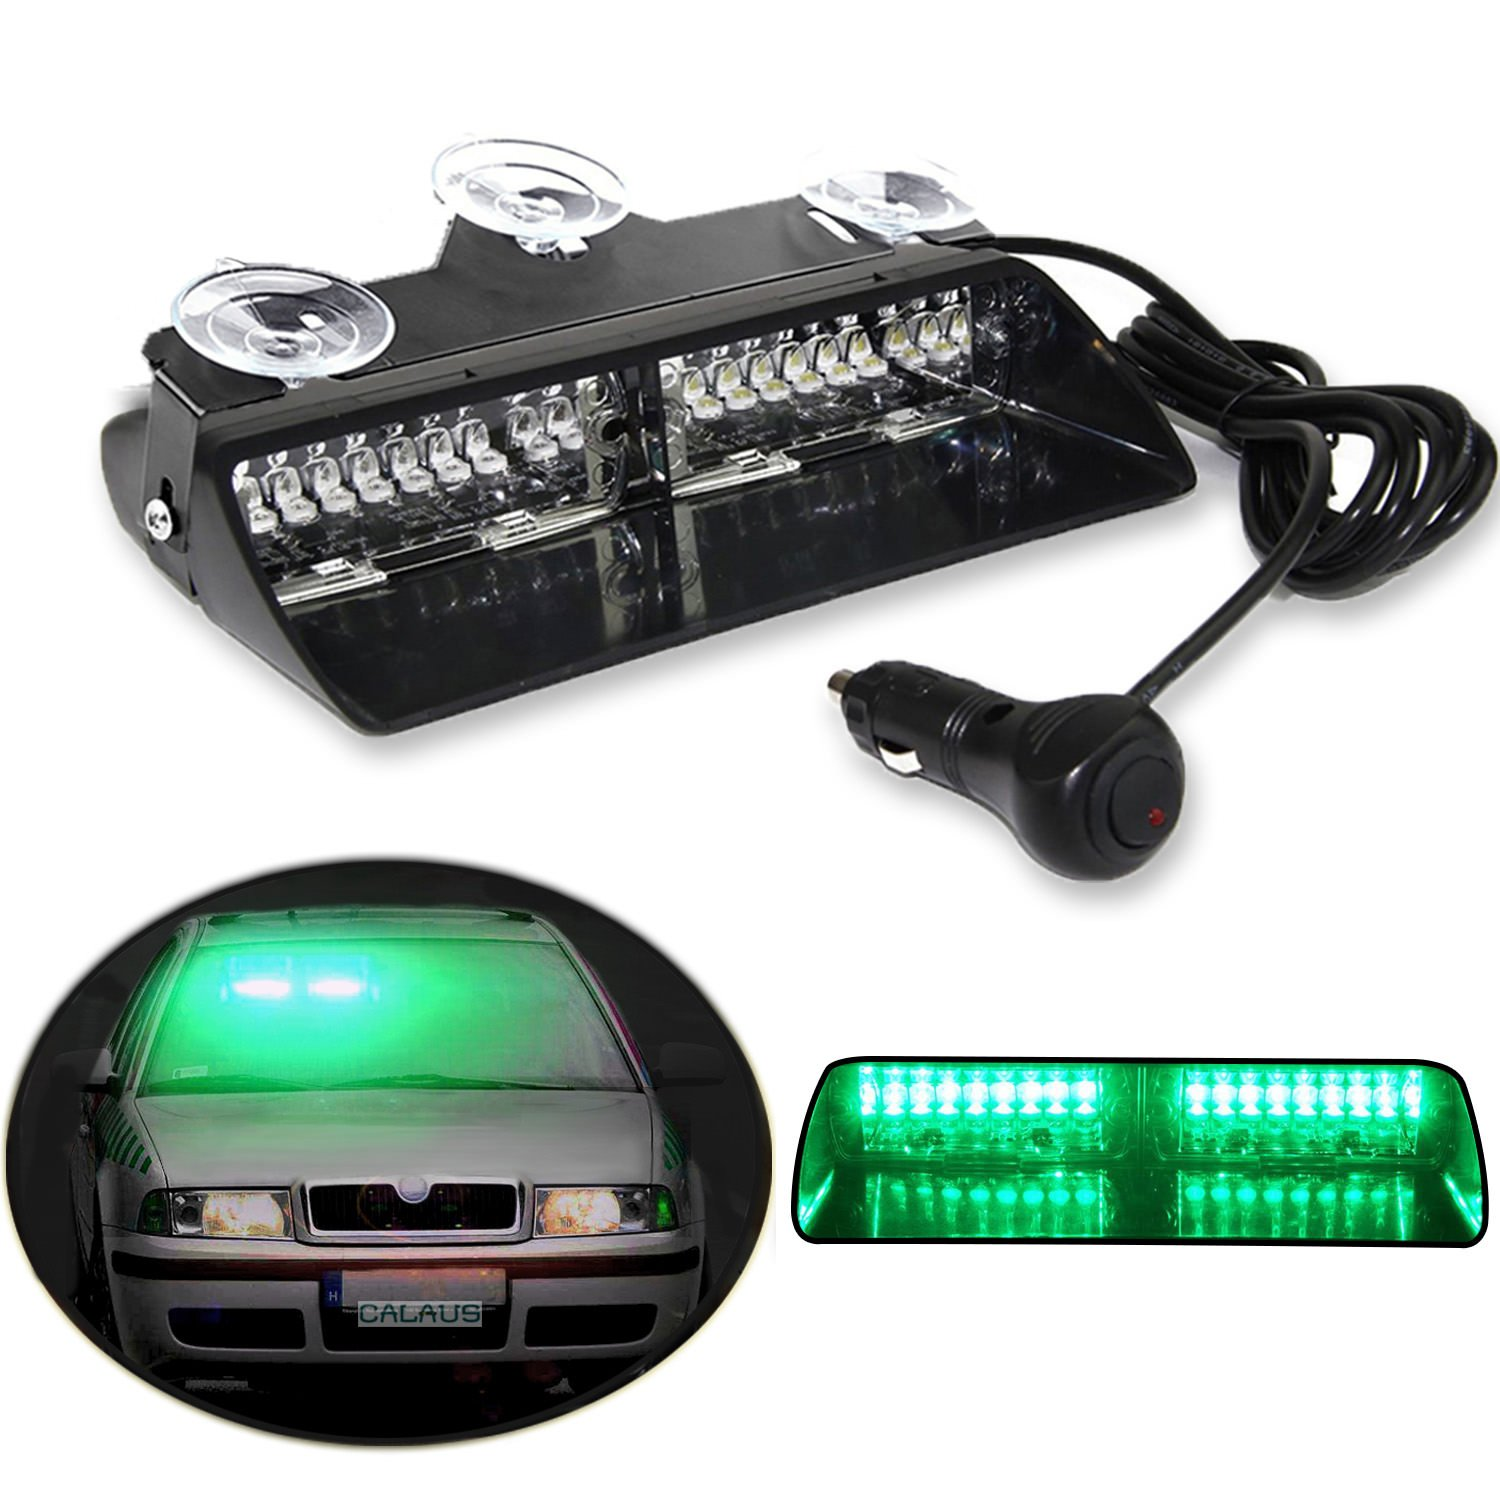 CALAUS 16 LED High Intensity Car Auto Windshield Law Enforcement Emergency Hazard Lamp Warning Strobe Lights With Suction Cups - Green